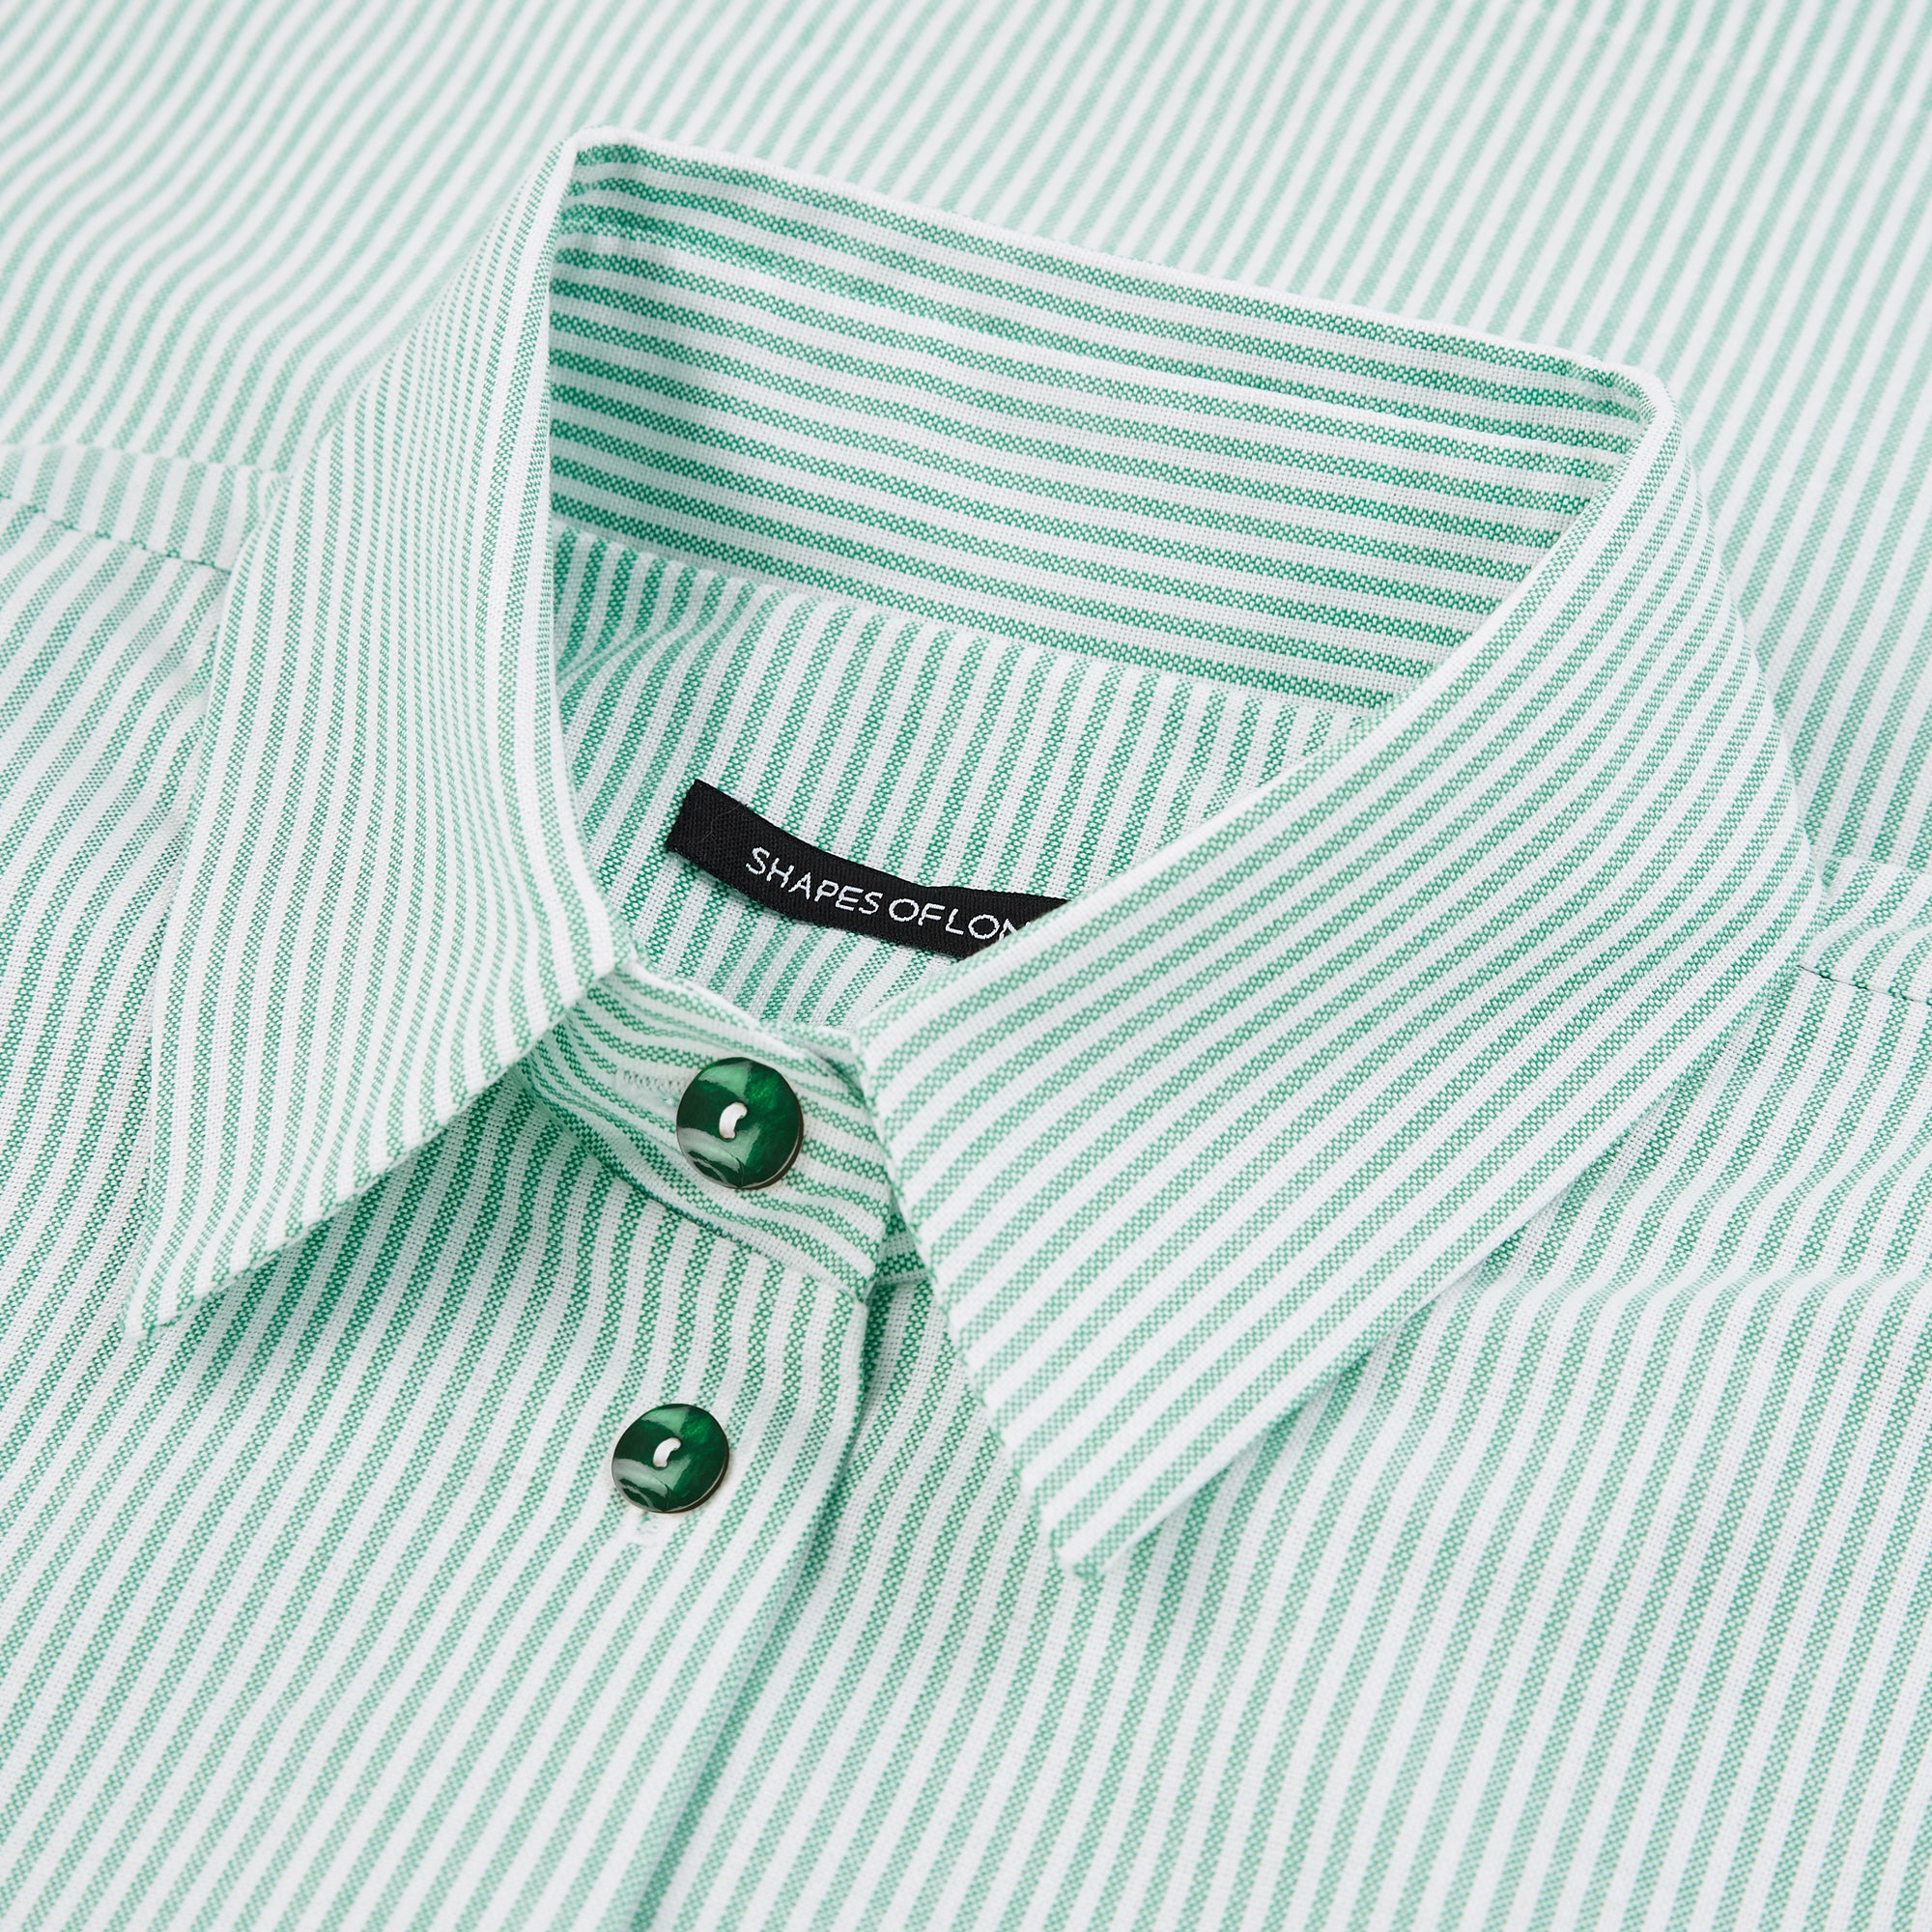 SOFT COTTON OVERSIZED SHIRT | RIVIERA GREEN STRIPE & WHITE SHELL BUTTONS